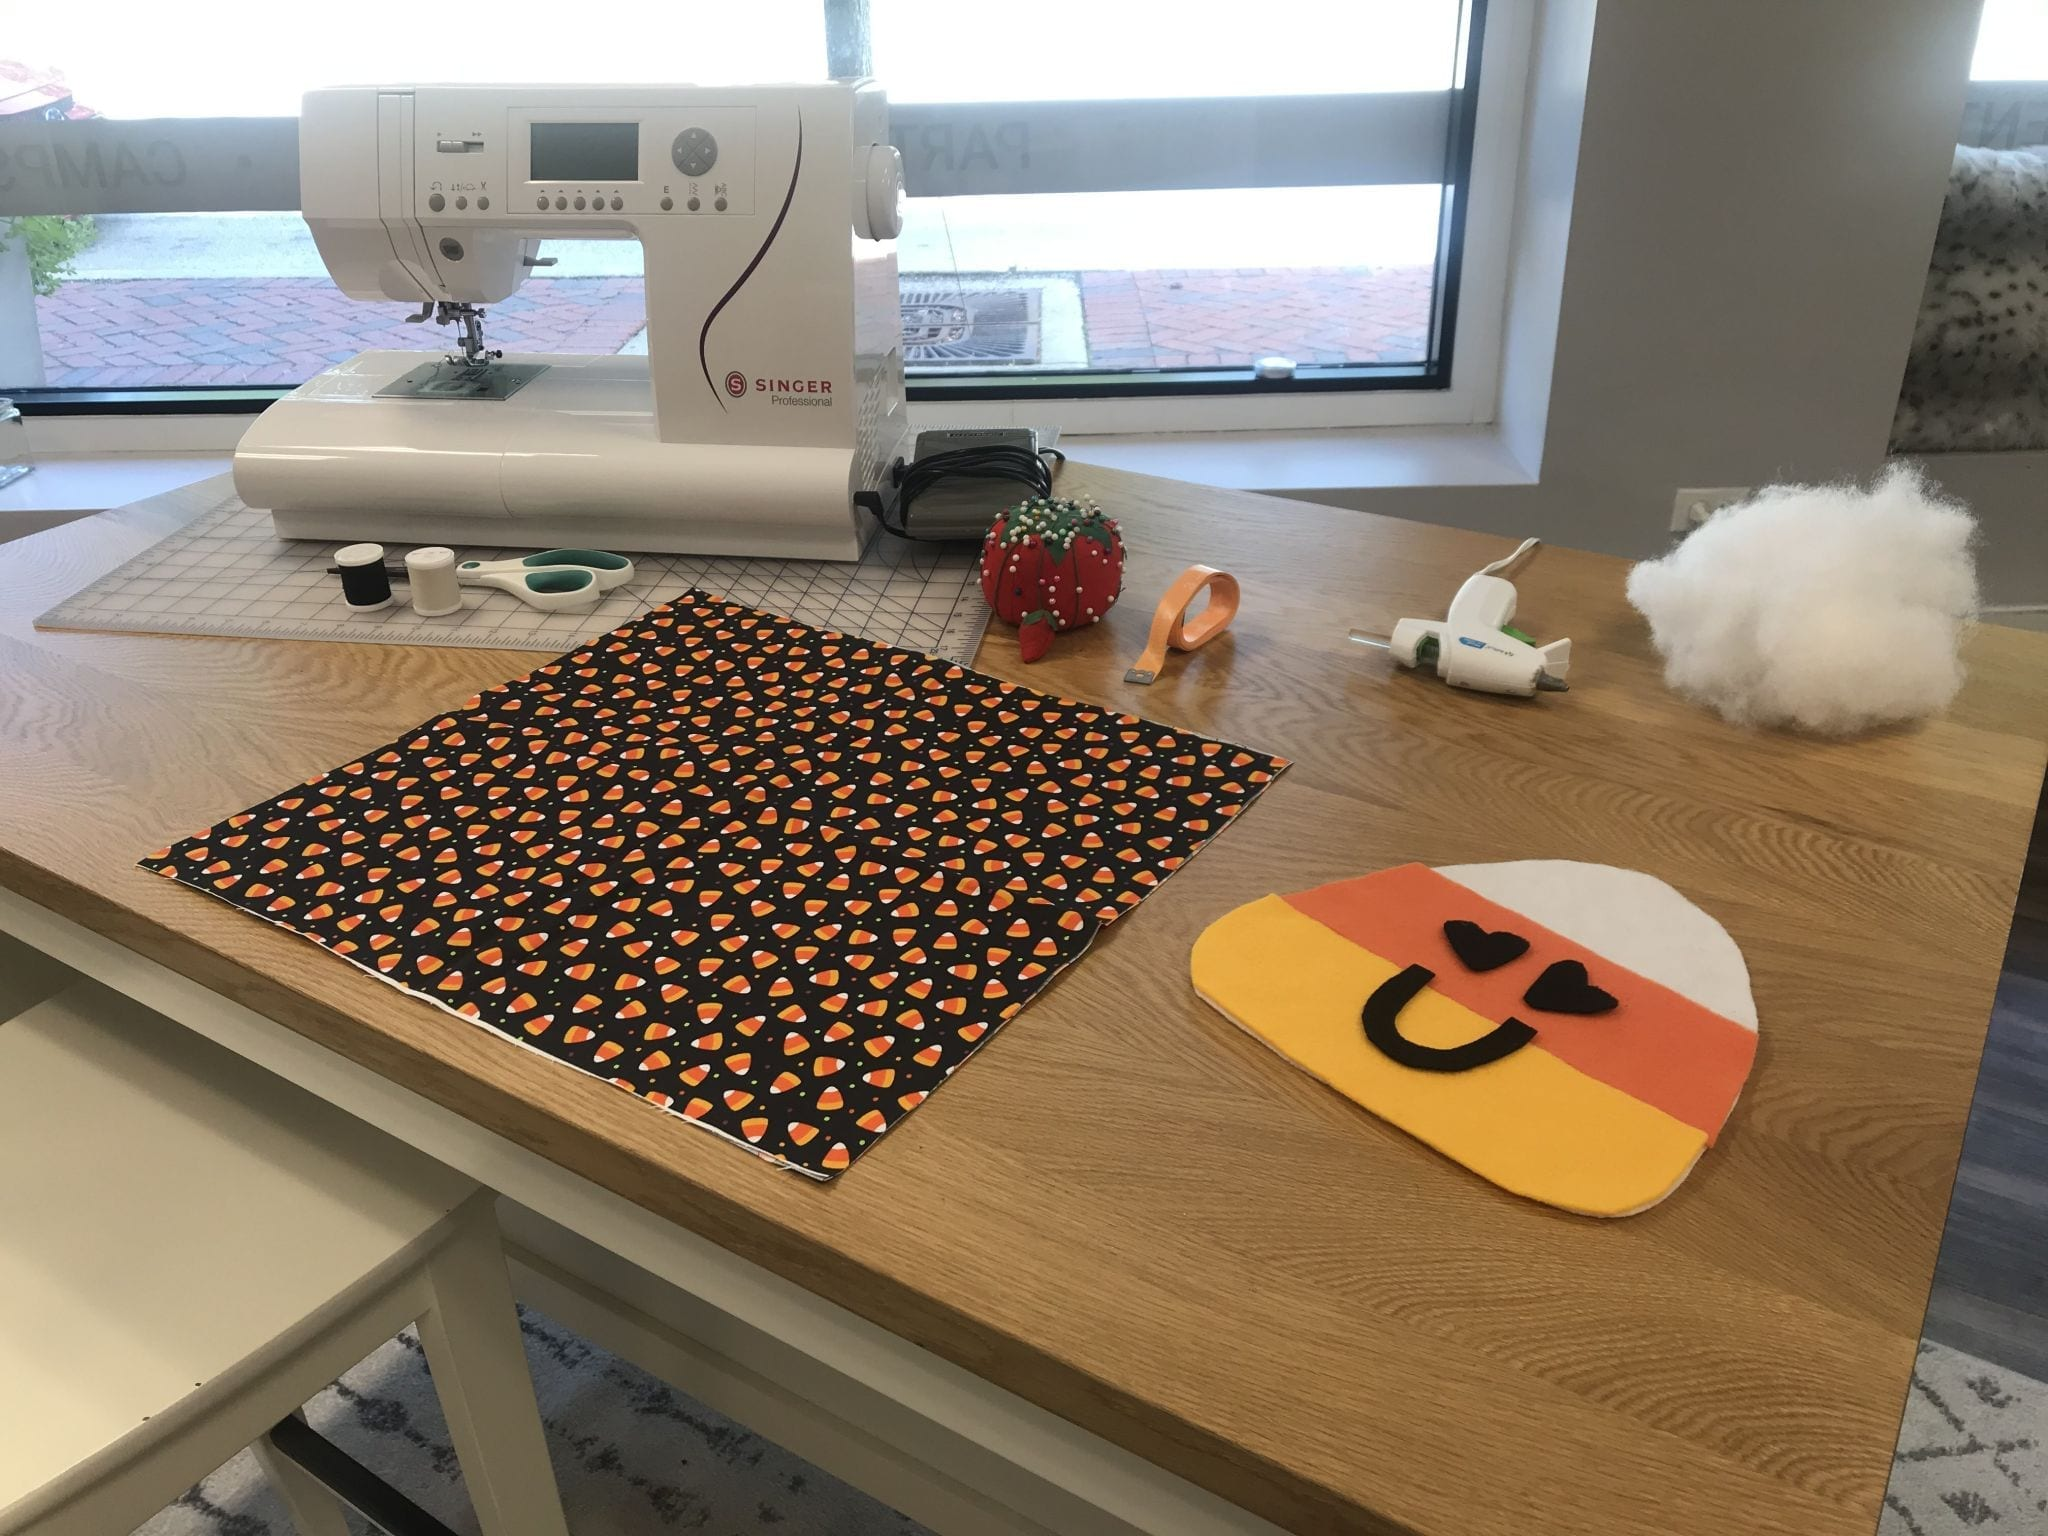 Halloween Pillow: Weekend Workshop: Sunday, October 10 from 3:30-5:30 PM